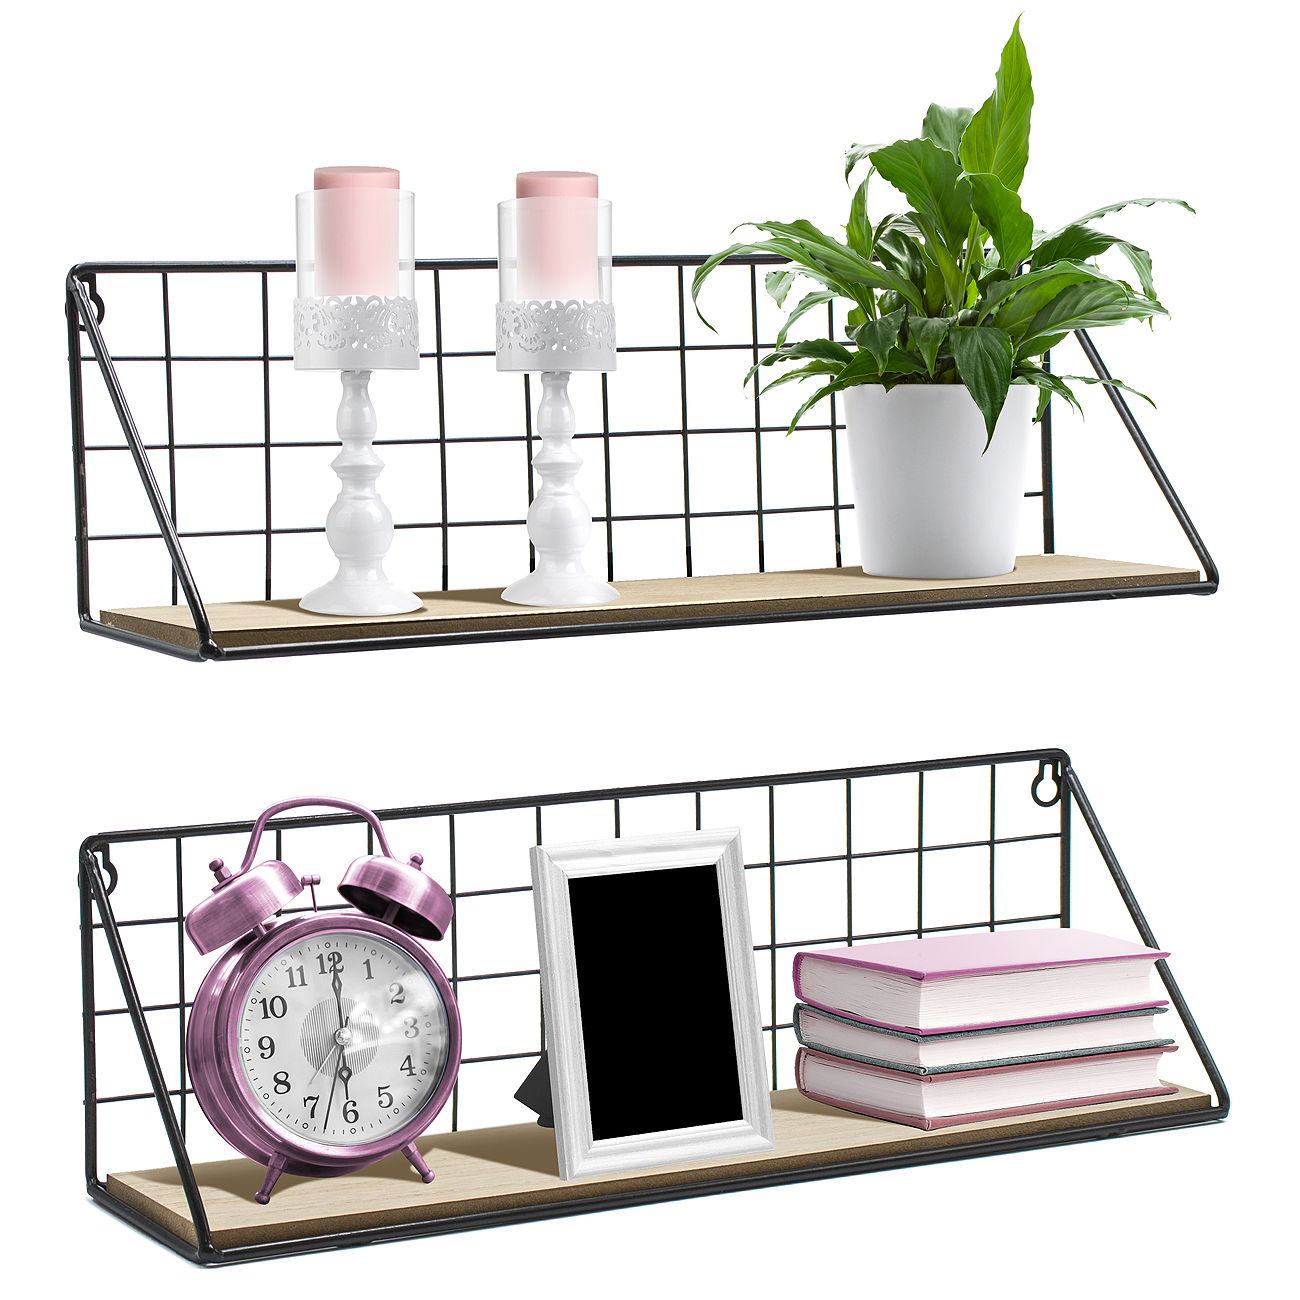 glamorous decorative bathroom wall shelves | Sorbus Floating Shelves Wall Mounted Rustic Wood Storage ...